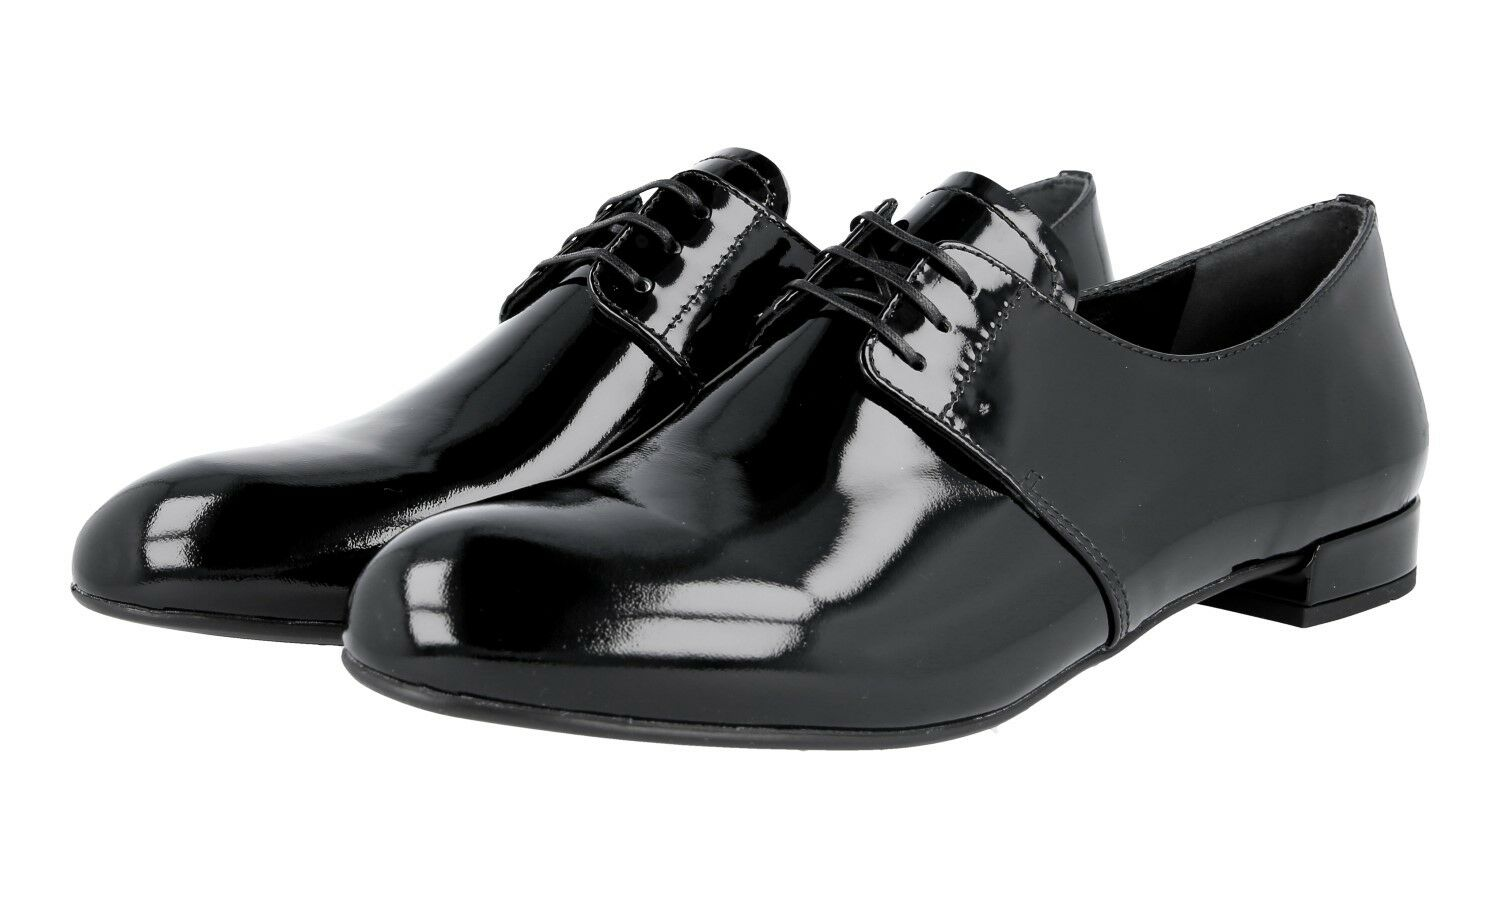 AUTHENTIC LUXURY PRADA SHOES PATENT DNC645 BLACK NEW US 9 EU 39 39,5 UK 6